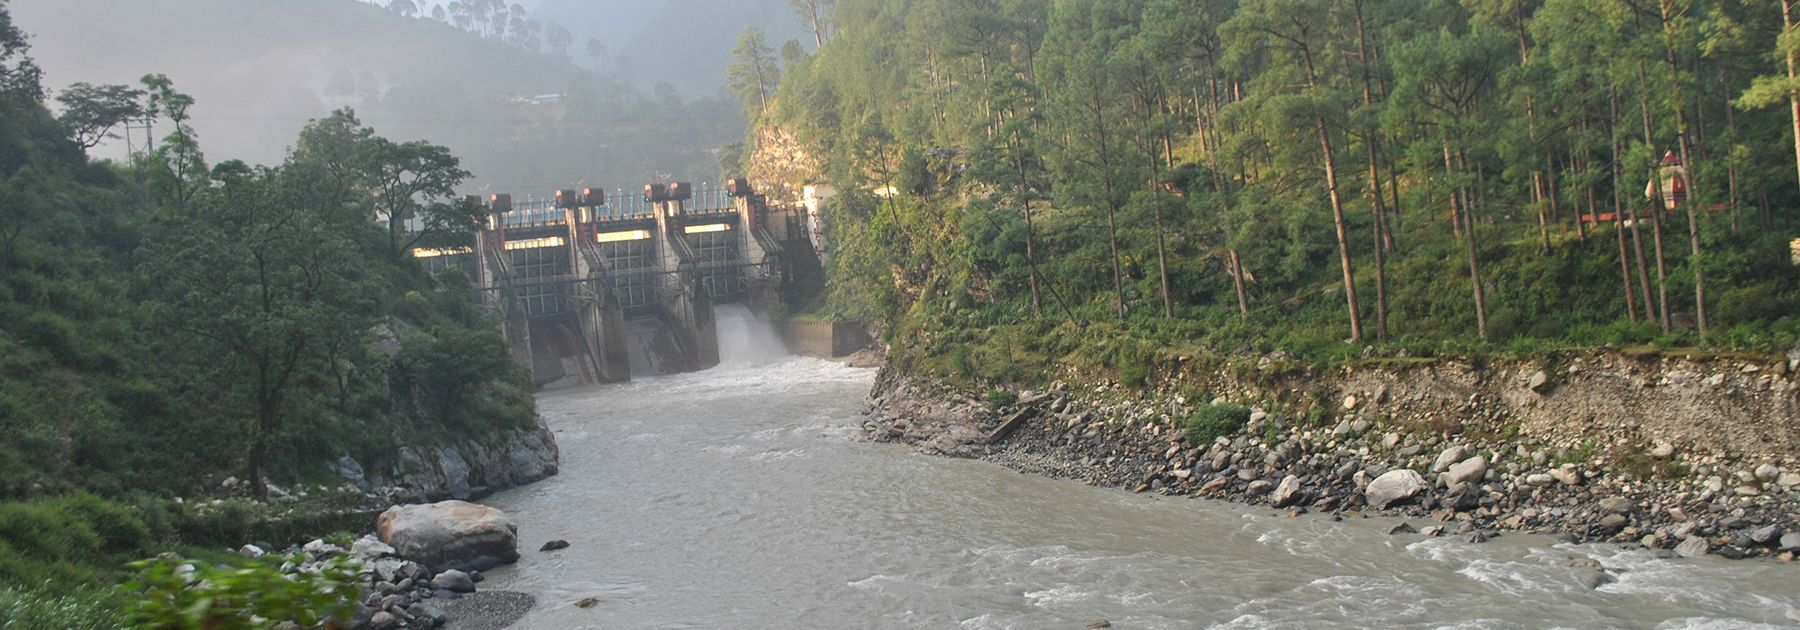 View of the Maneri Dam, a concrete gravity dam, on the Bhagirathi River. (Atudu, licensed under CC BY-SA 4.0)